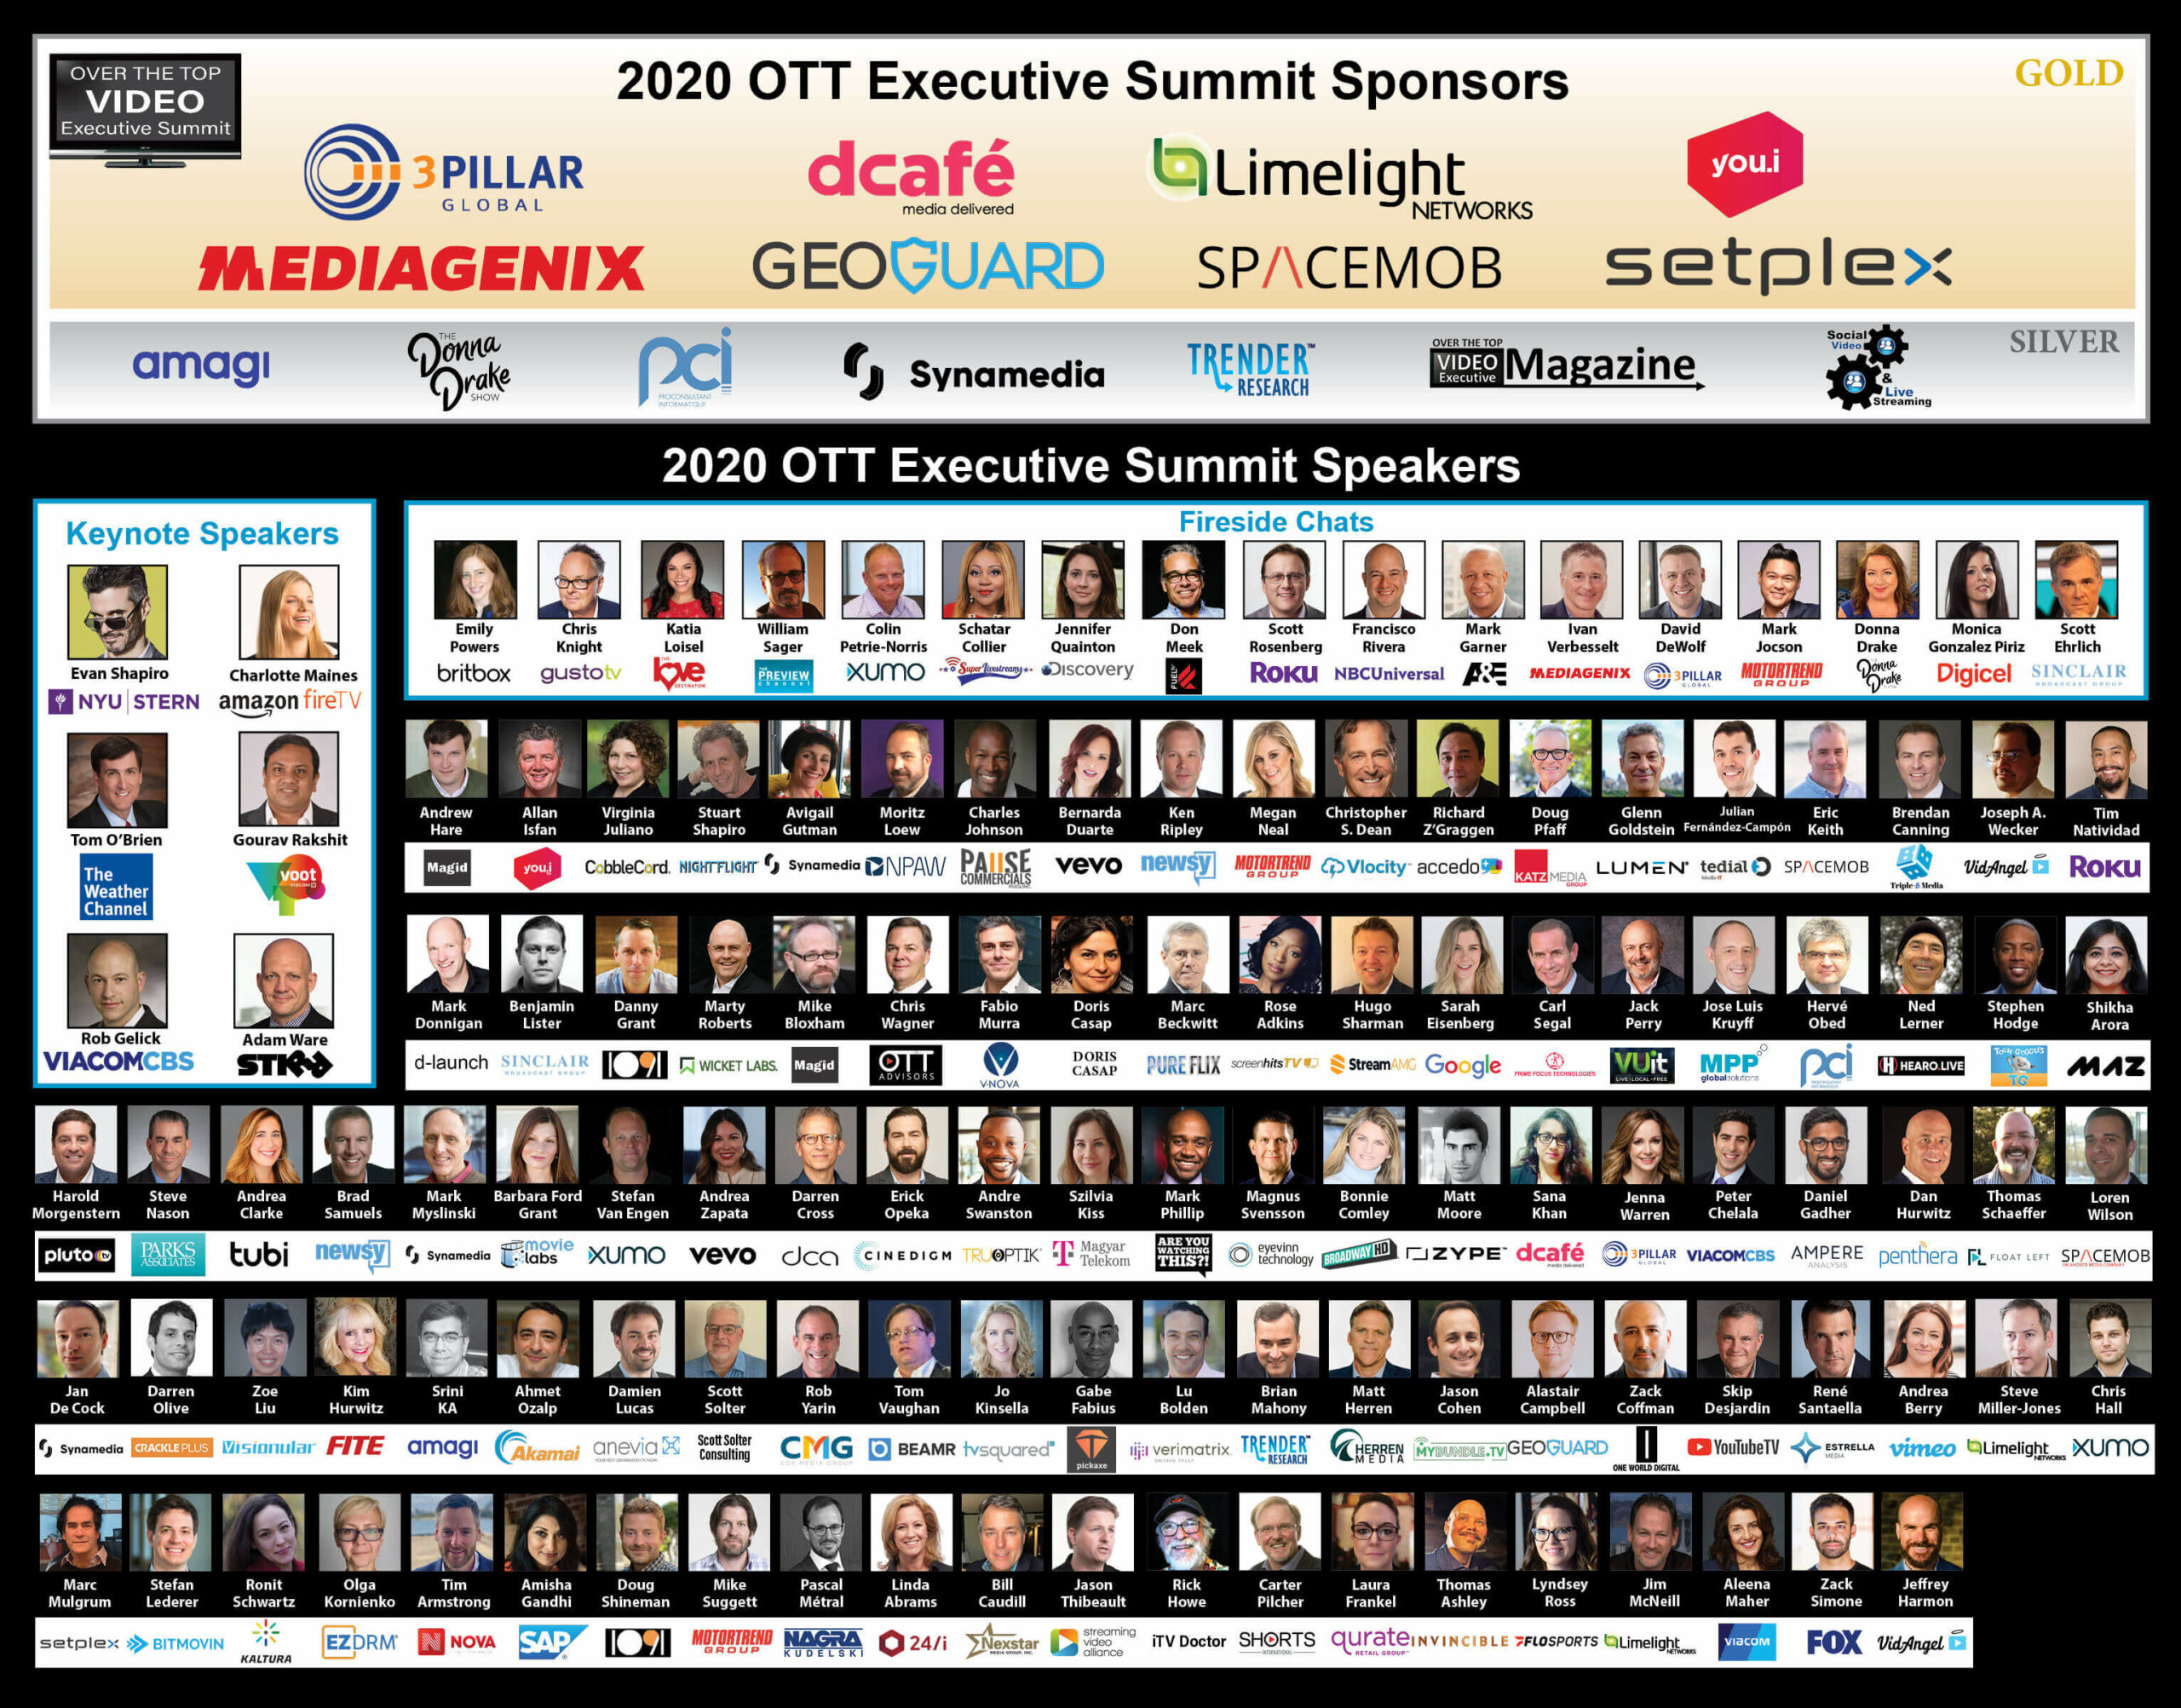 Love Destination CEO Katia Loisel joins industry leaders as a speaker at the OTT Executive Summit